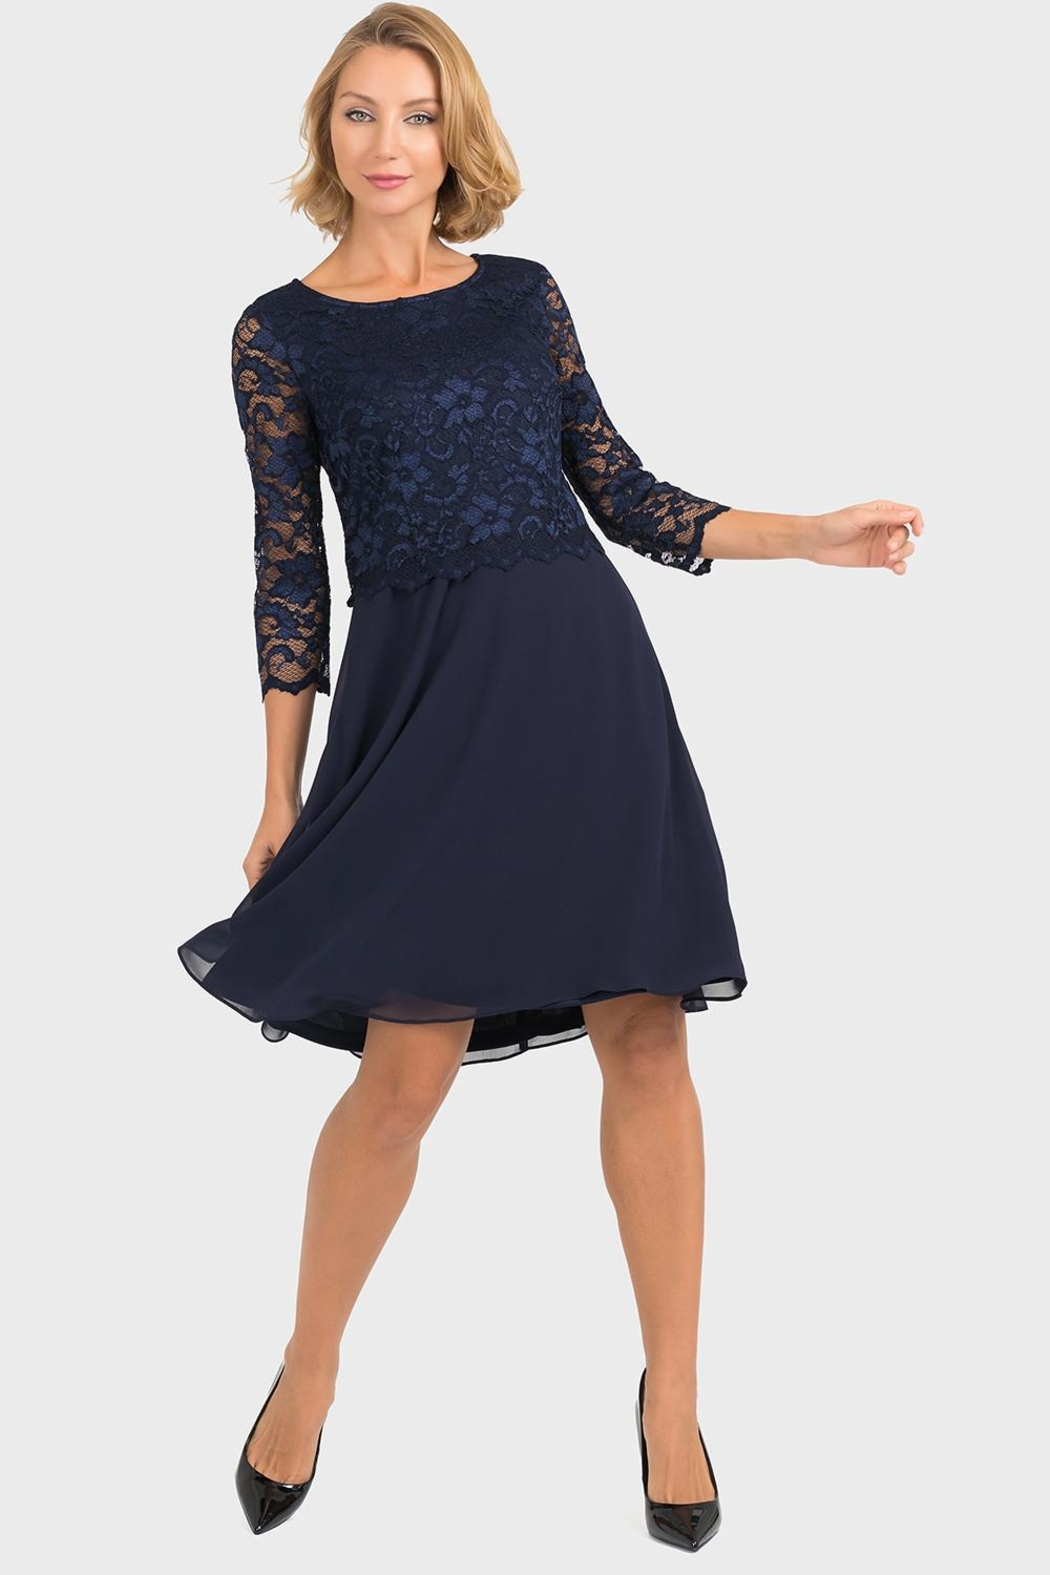 Joseph Ribkoff Marie Lace-Top Dress - Front Cropped Image